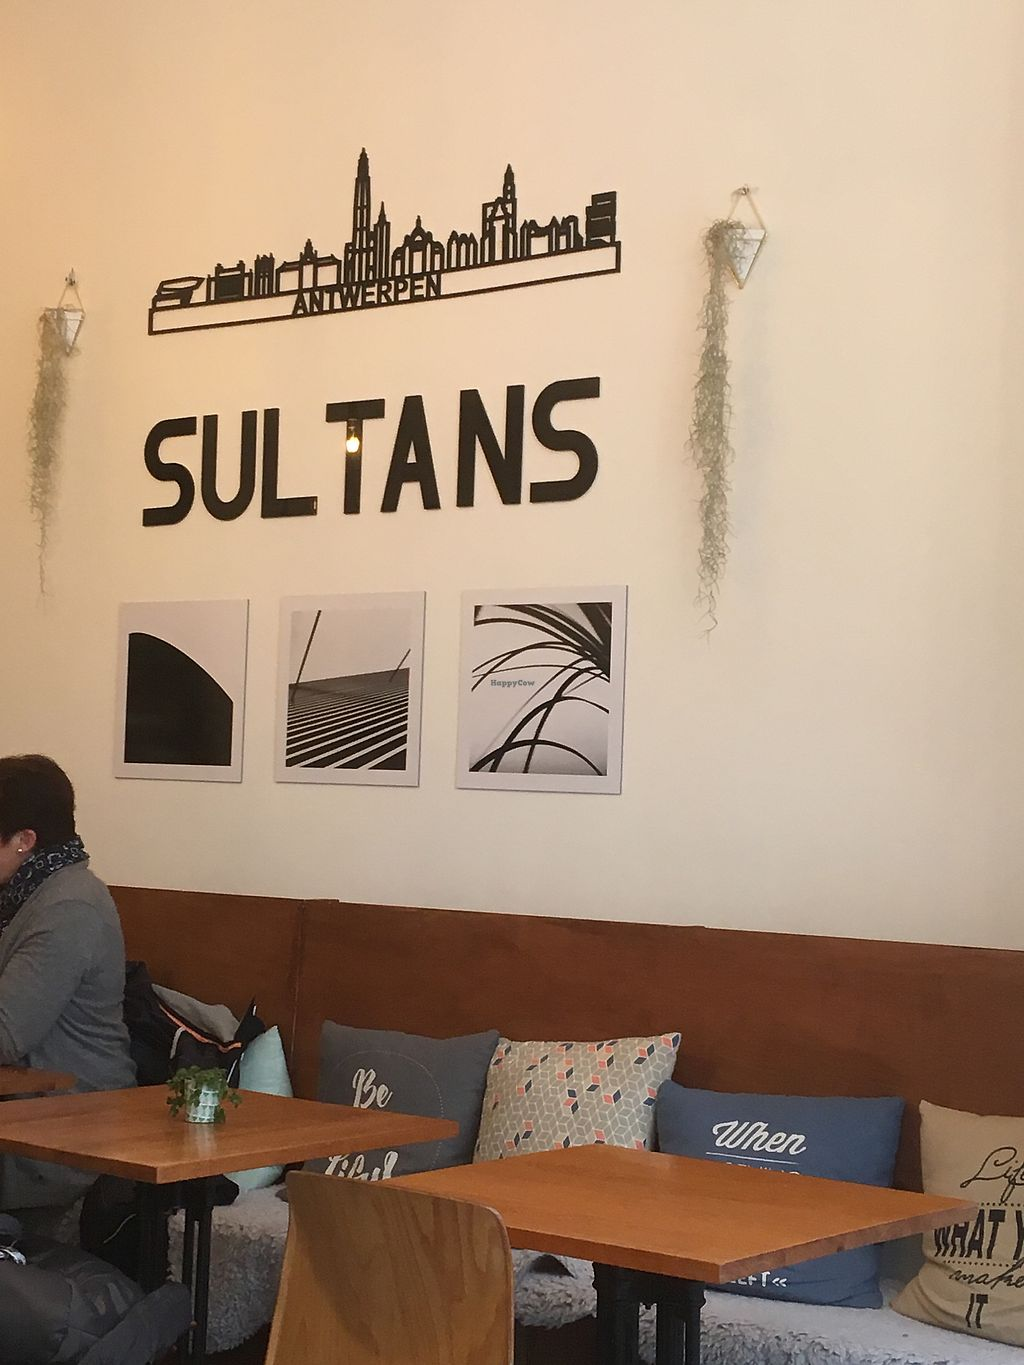 """Photo of Sultans  by <a href=""""/members/profile/rise72"""">rise72</a> <br/>Zeer vriendelijke bediening <br/> March 11, 2018  - <a href='/contact/abuse/image/94520/369403'>Report</a>"""